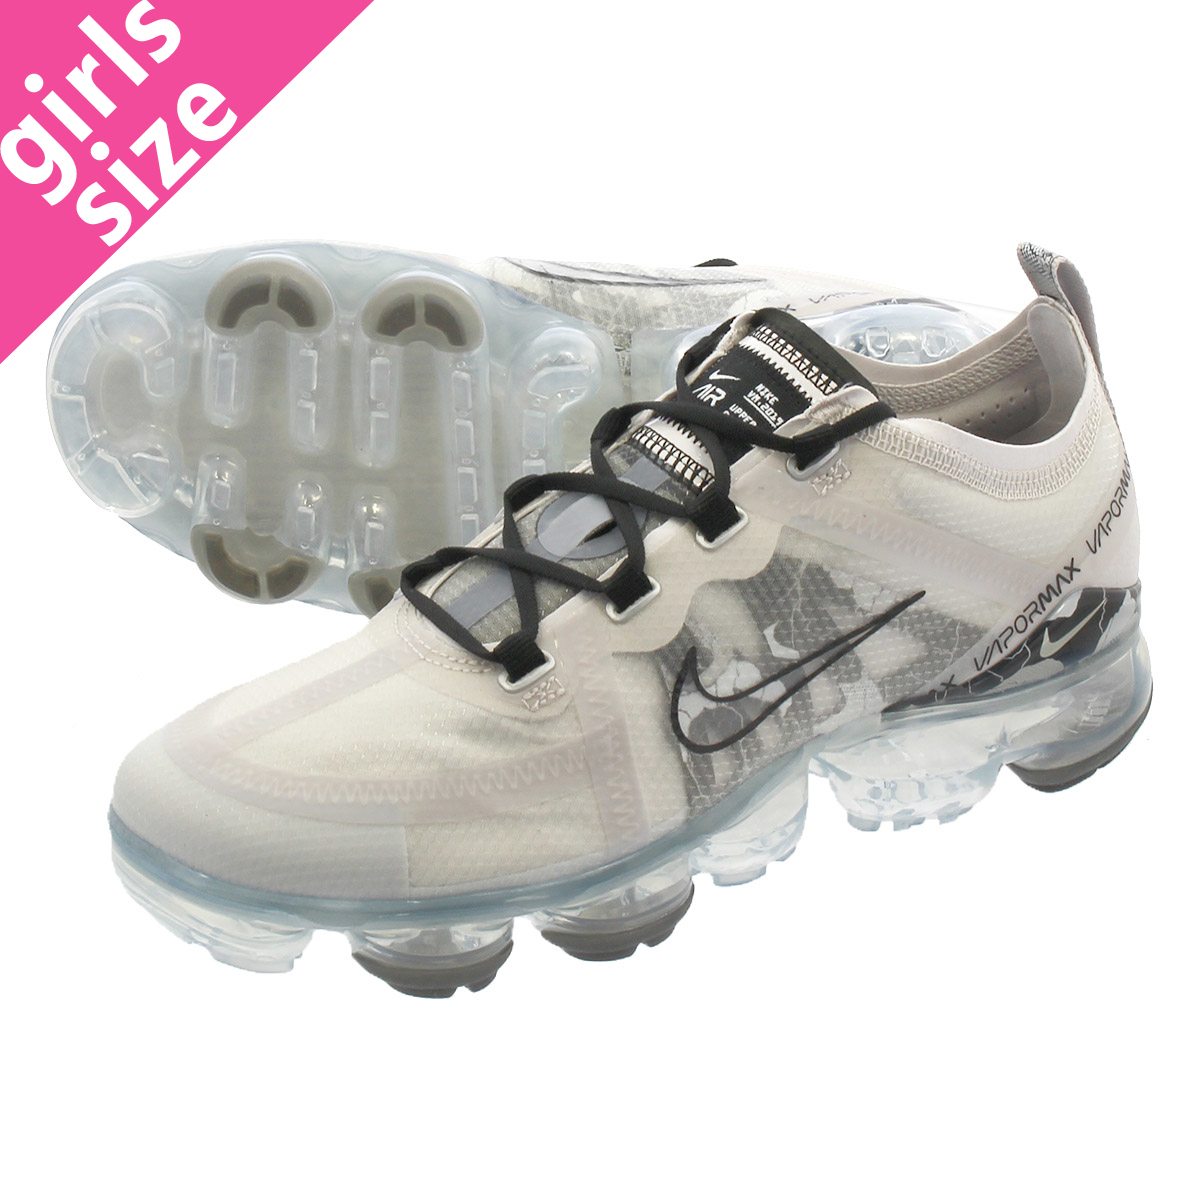 buy popular 1a18e ddb90 NIKE WMNS AIR VAPORMAX 2019 SE Nike women vapor max 2019 SE VAST  GRAY/BLACK/METALLIC SILVER cd7094-001